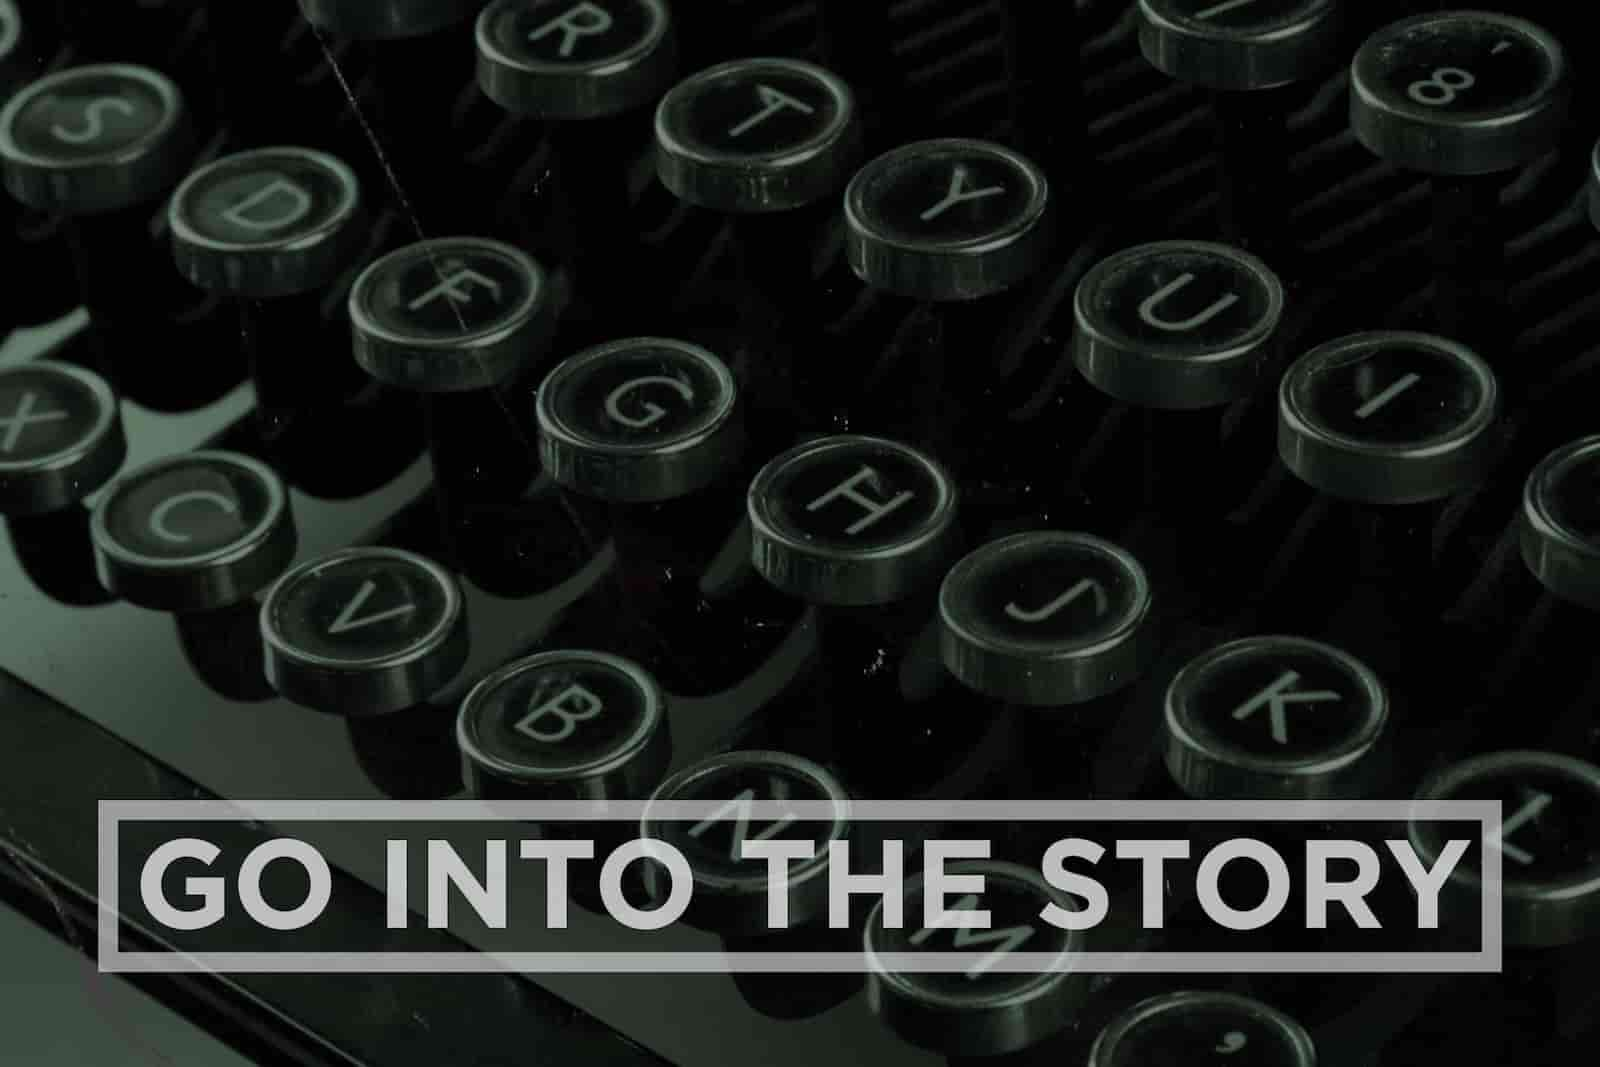 Best Screenwriting Websites - Script Writers - Go Into The Story